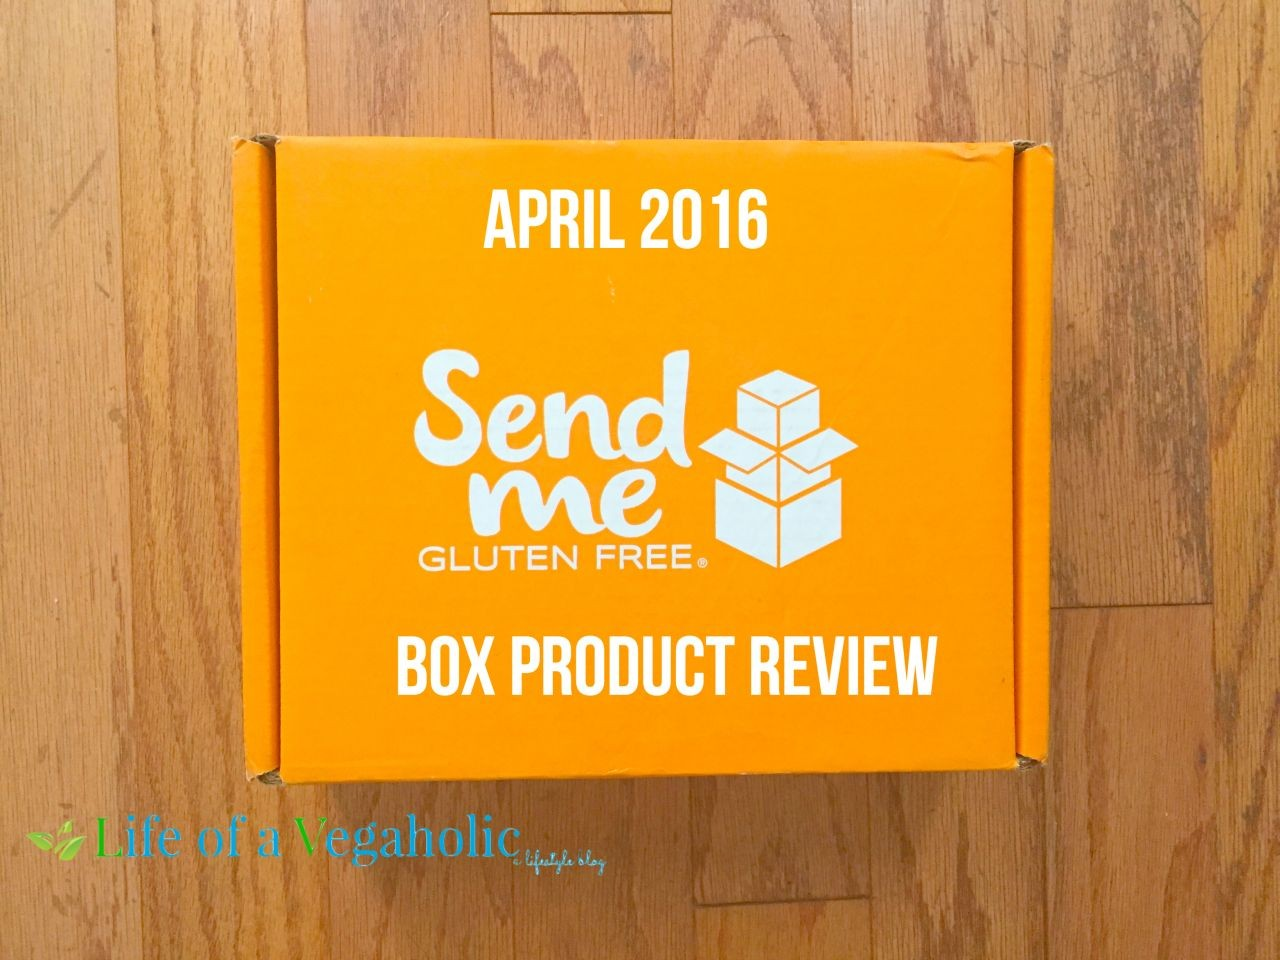 Send Me Gluten Free April 2016 Box Product Review